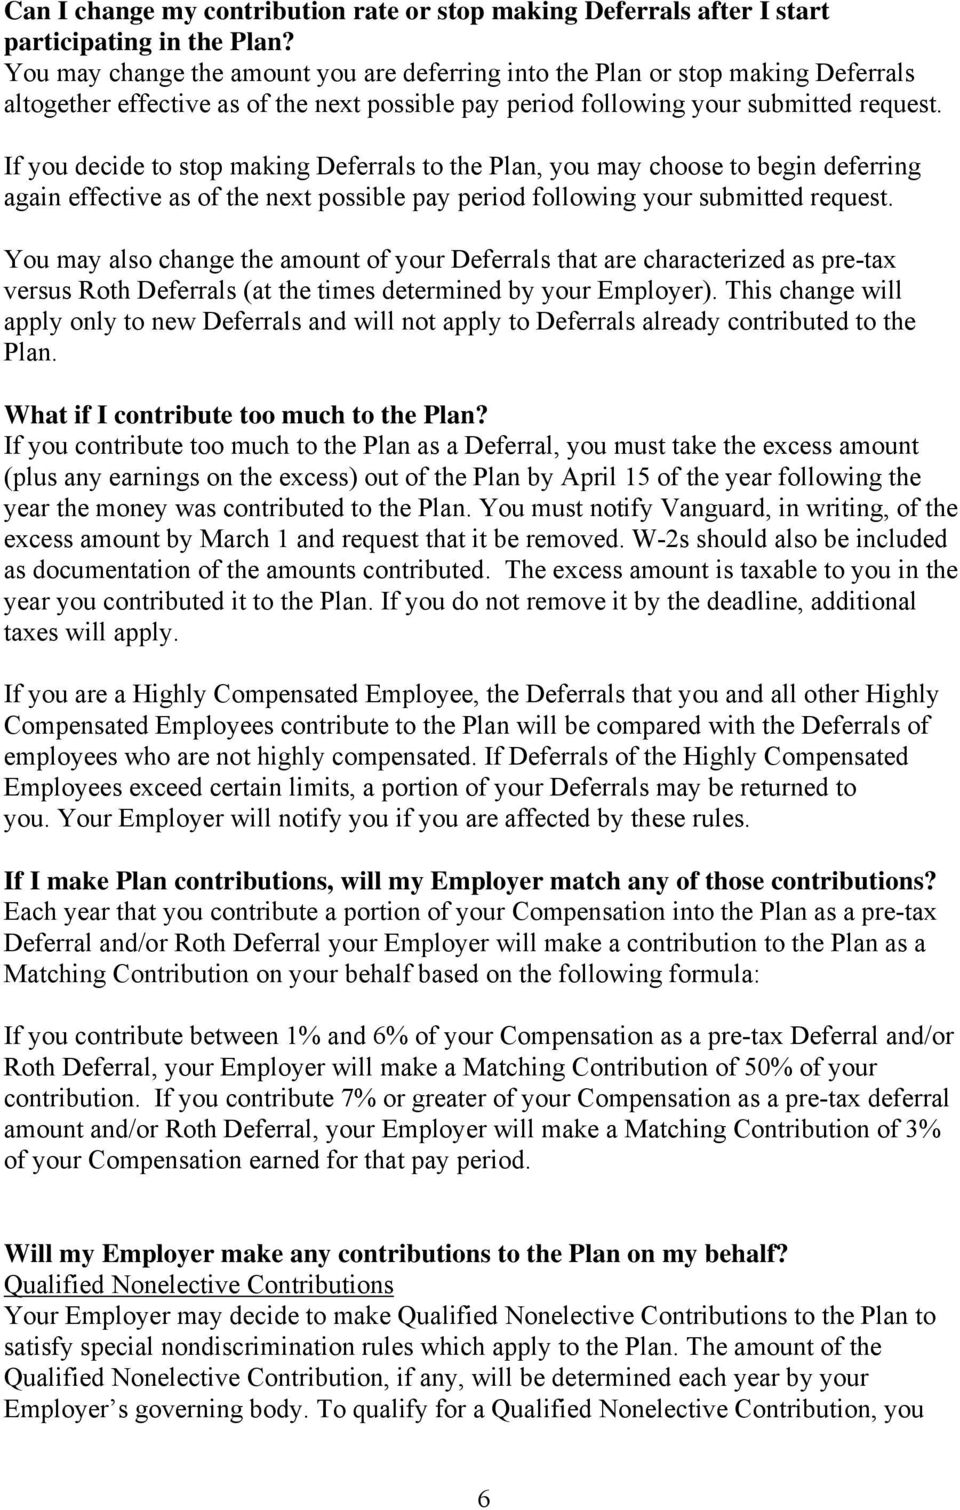 If you decide to stop making Deferrals to the Plan, you may choose to begin deferring again effective as of the next possible pay period following your submitted request.